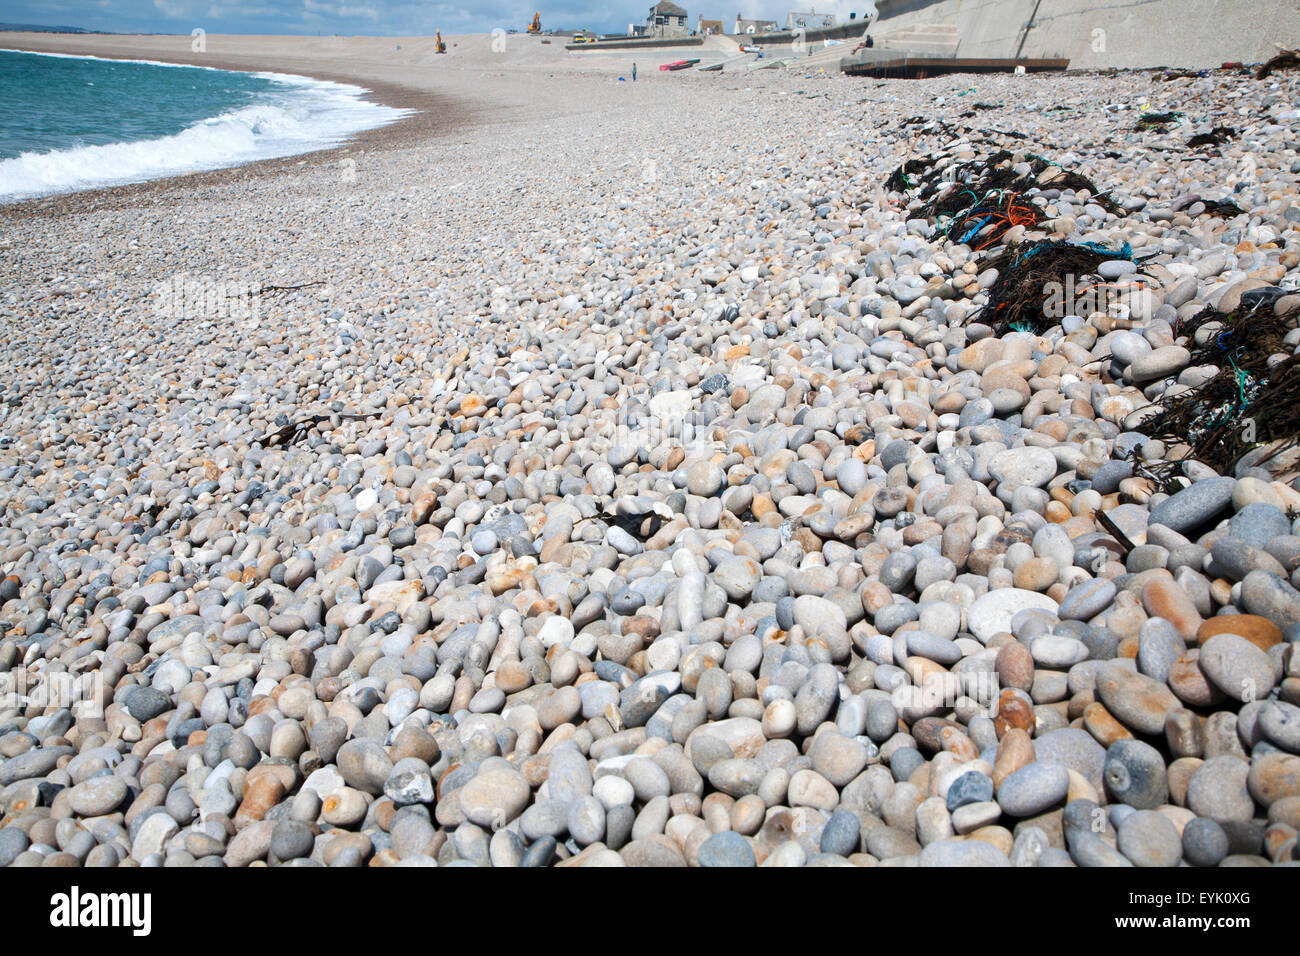 Rounded pebbles on shingle beach, Chesil Beach, Chiswell, Isle of Portland, Dorset, England, UK - Stock Image